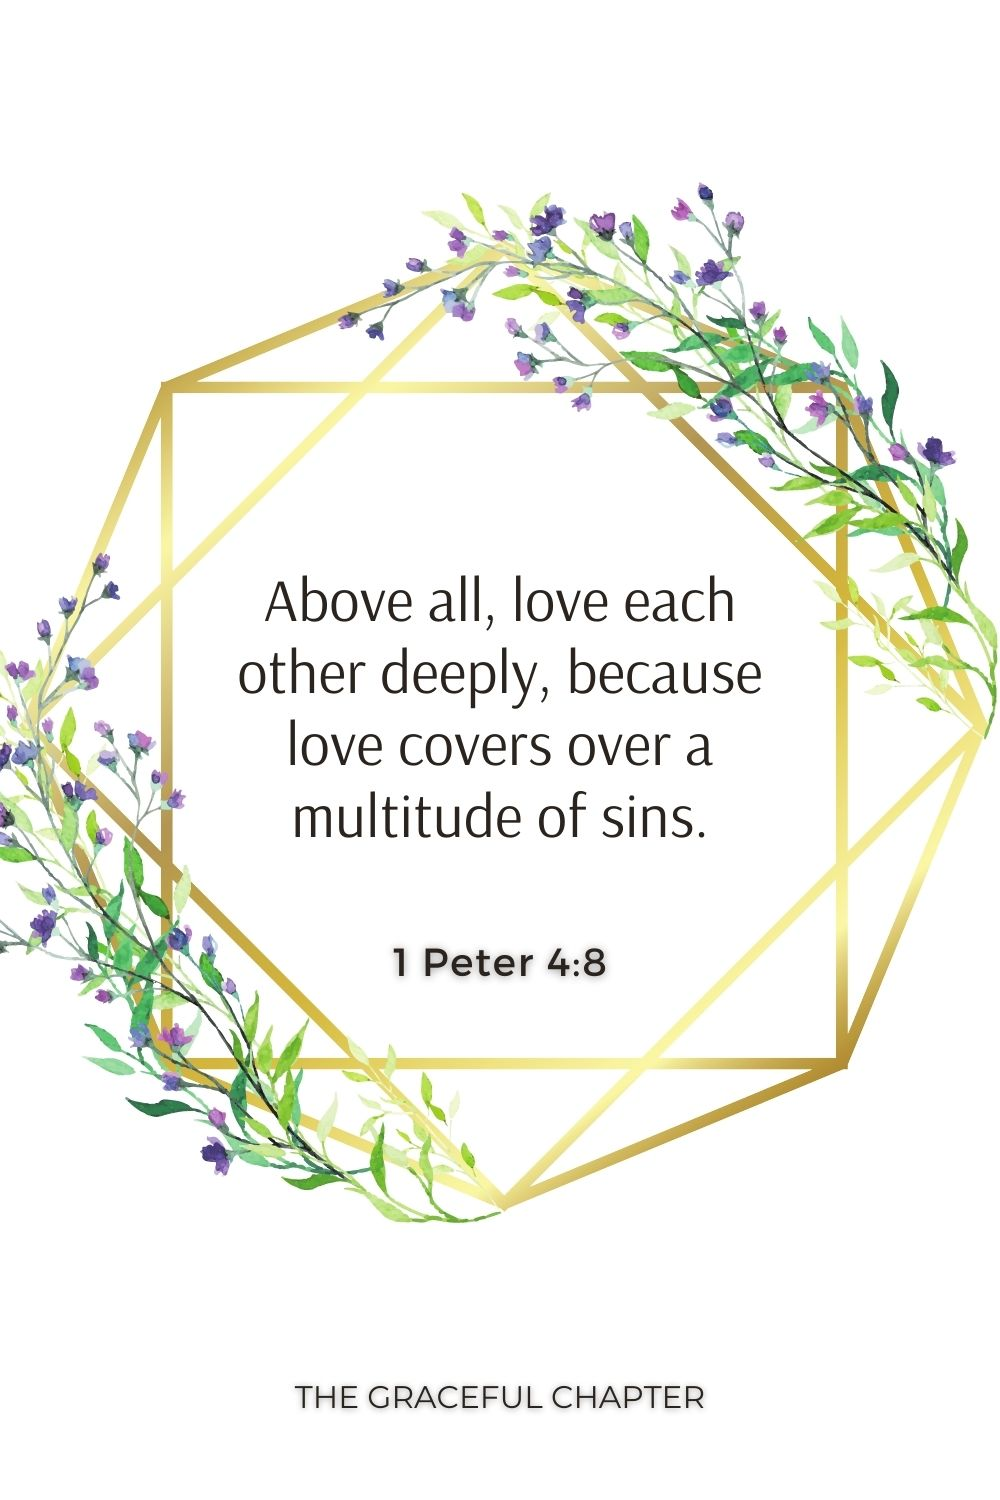 Above all, love each other deeply, because love covers over a multitude of sins. 1 Peter 4:8